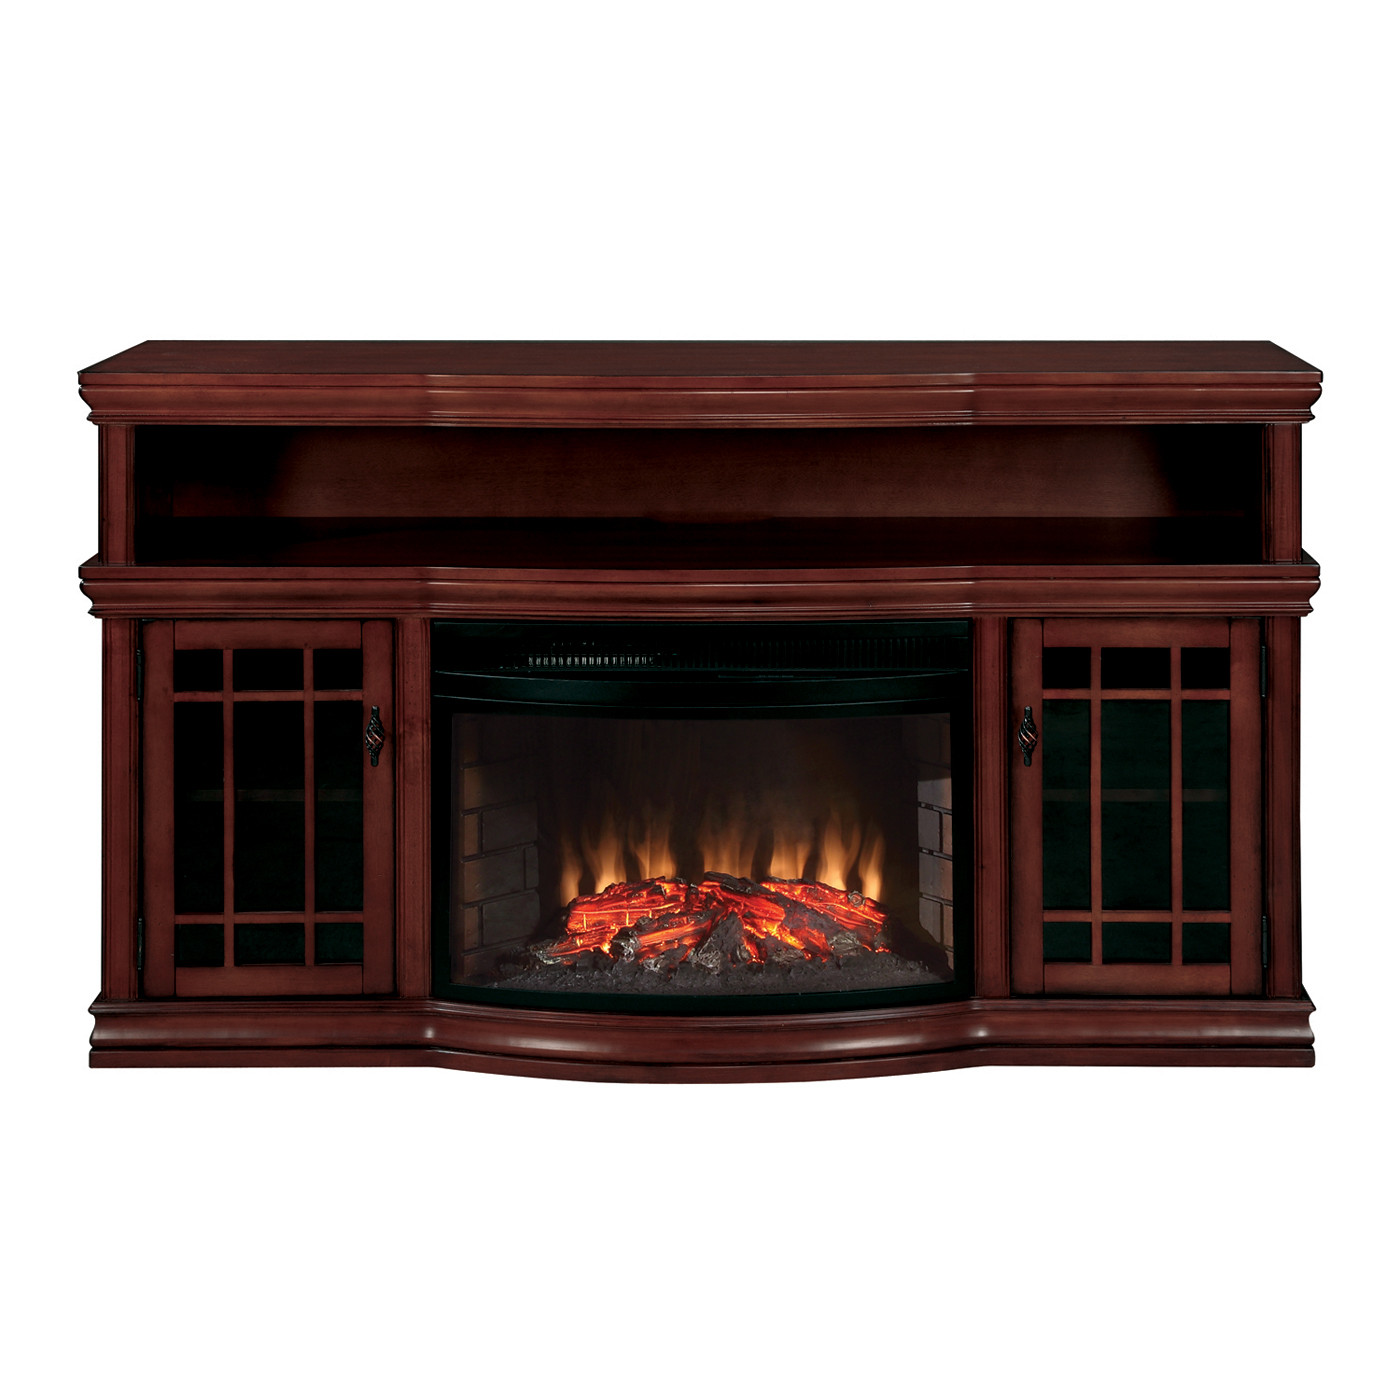 Best ideas about Tv Stand With Fireplace Lowes . Save or Pin Muskoka MTVSC2513S Dwyer Electric Fireplace Media Console Now.